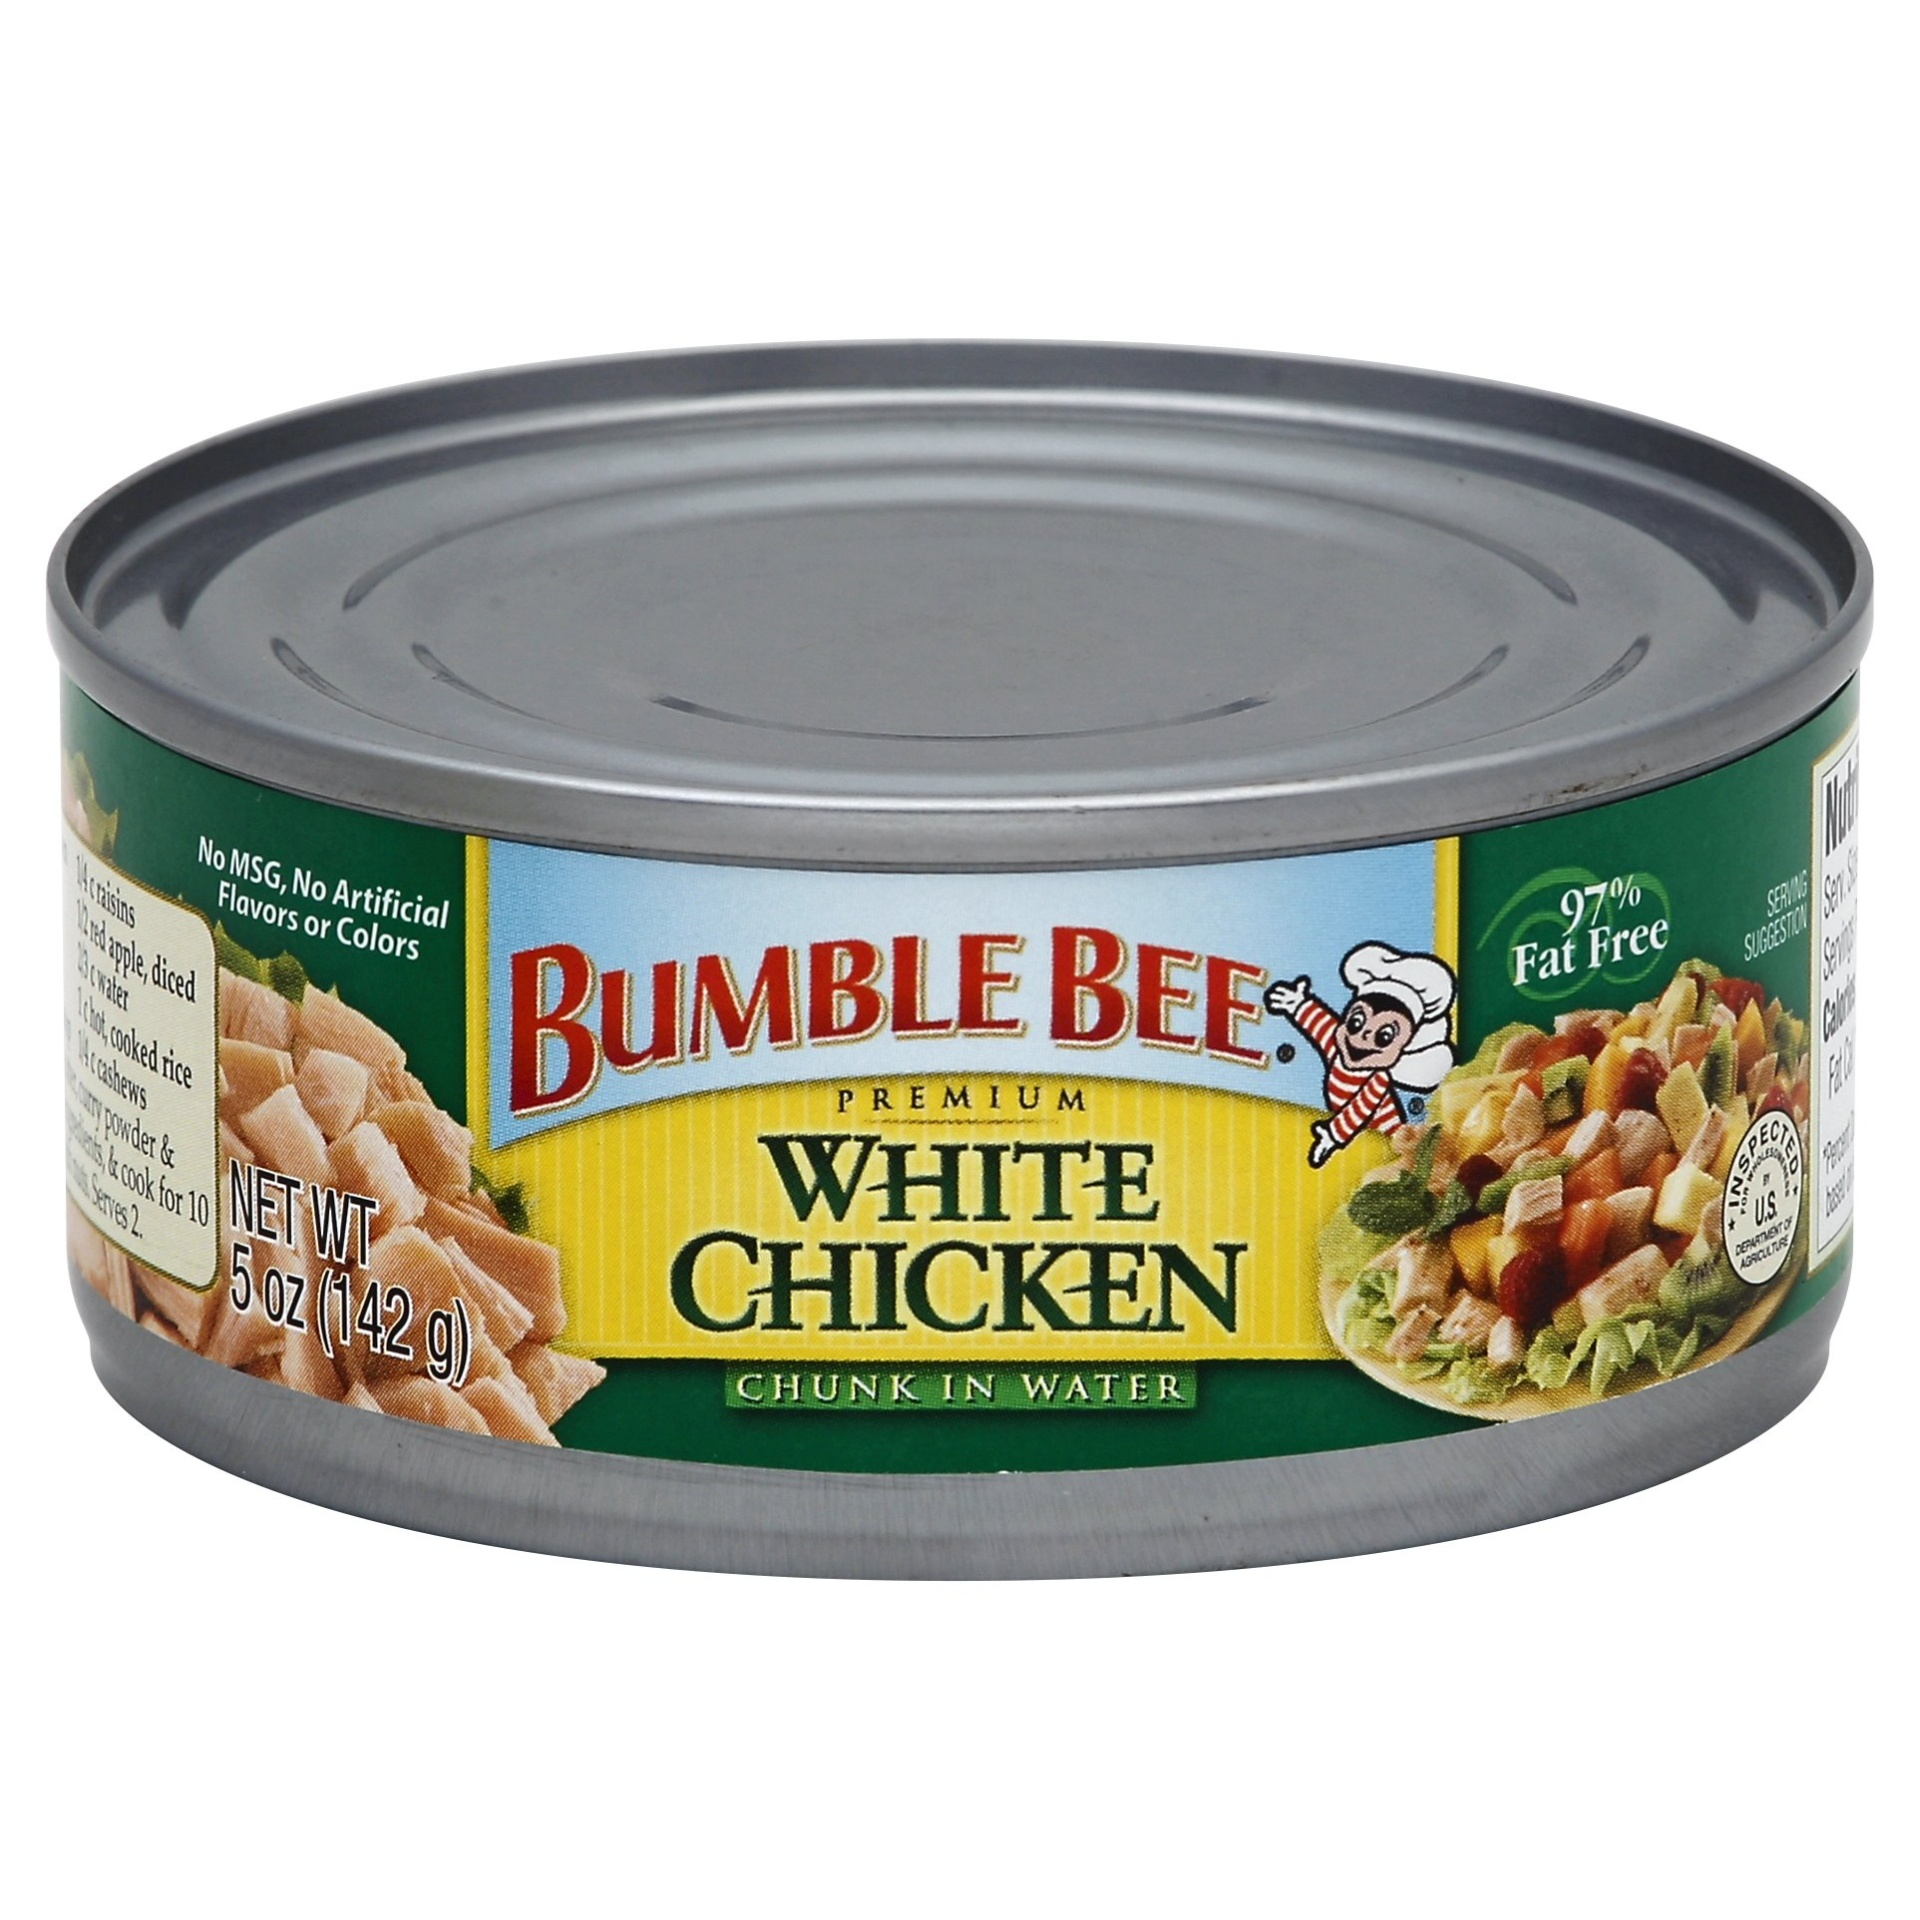 slide 1 of 1, Bumble Bee Premium White Chicken Chunk in Water,